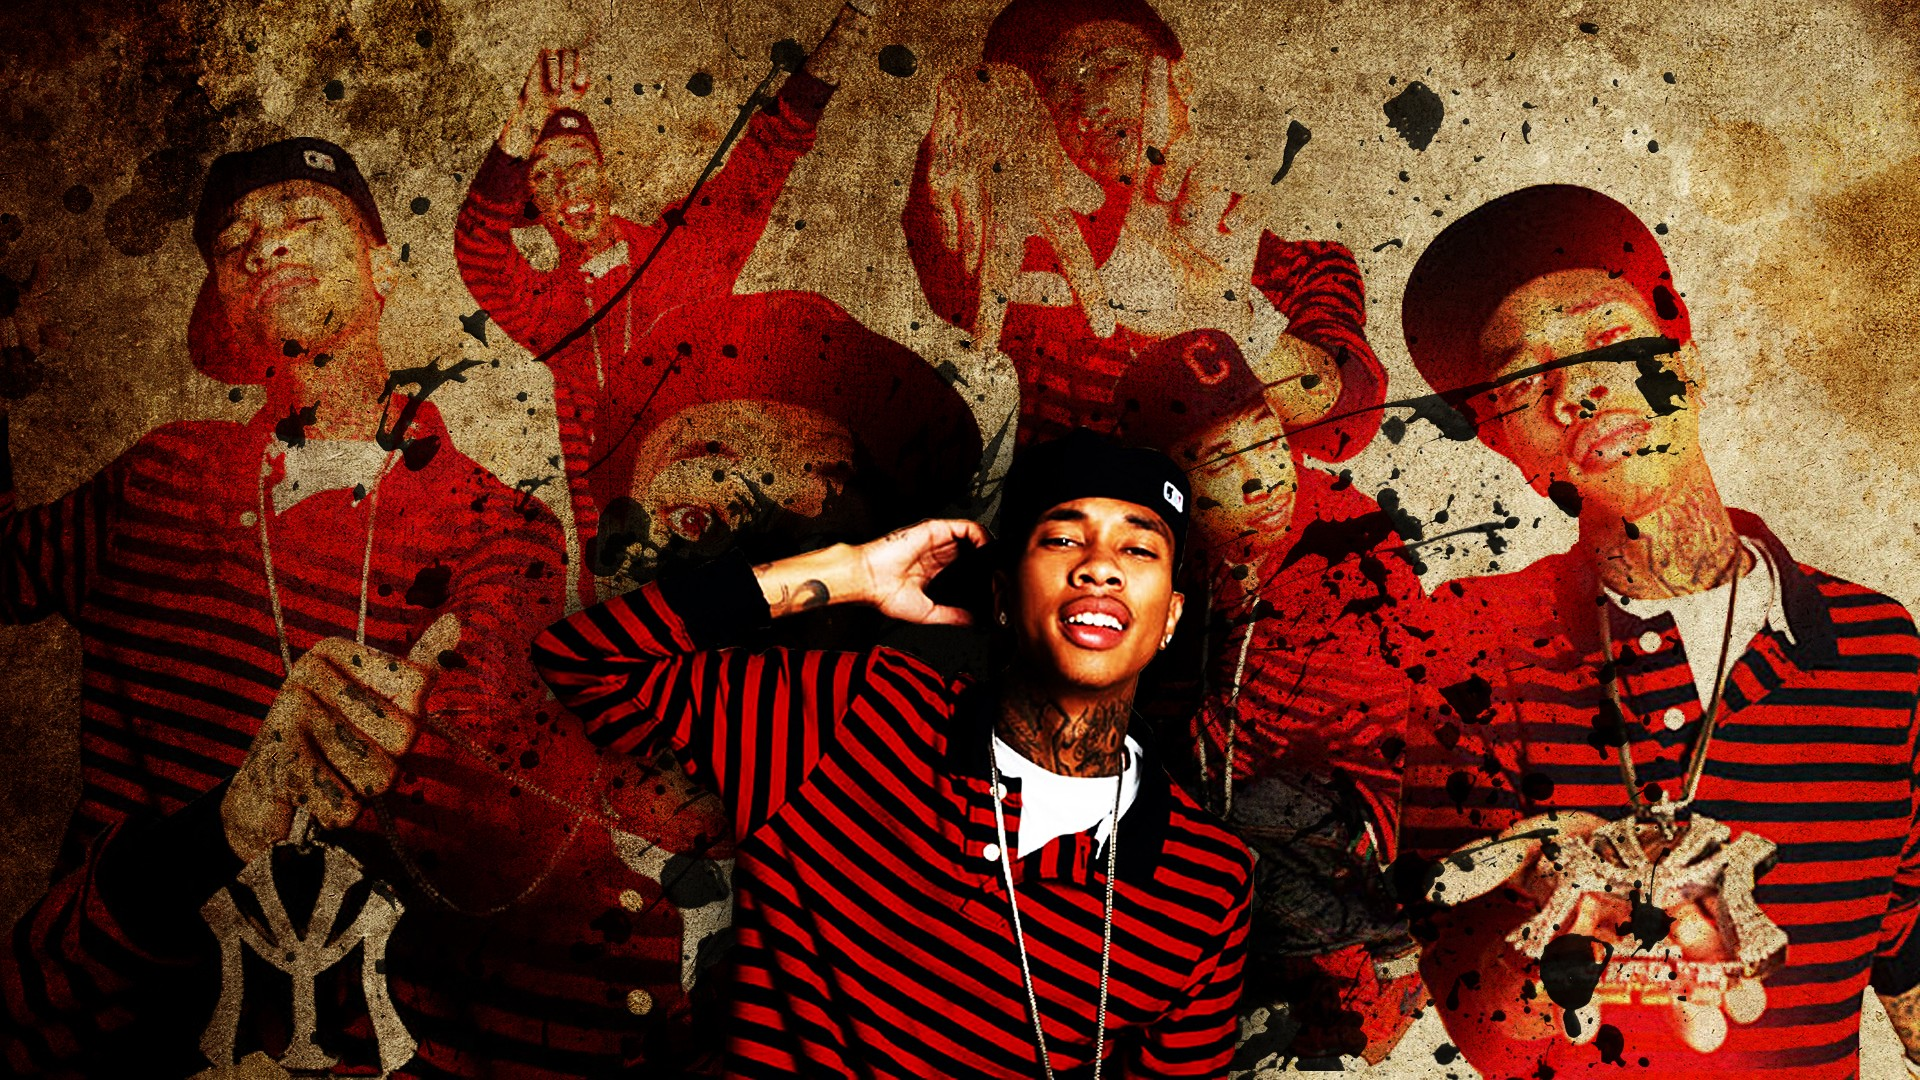 Download Tyga HD 16 background for your phone iPhone android 1920x1080